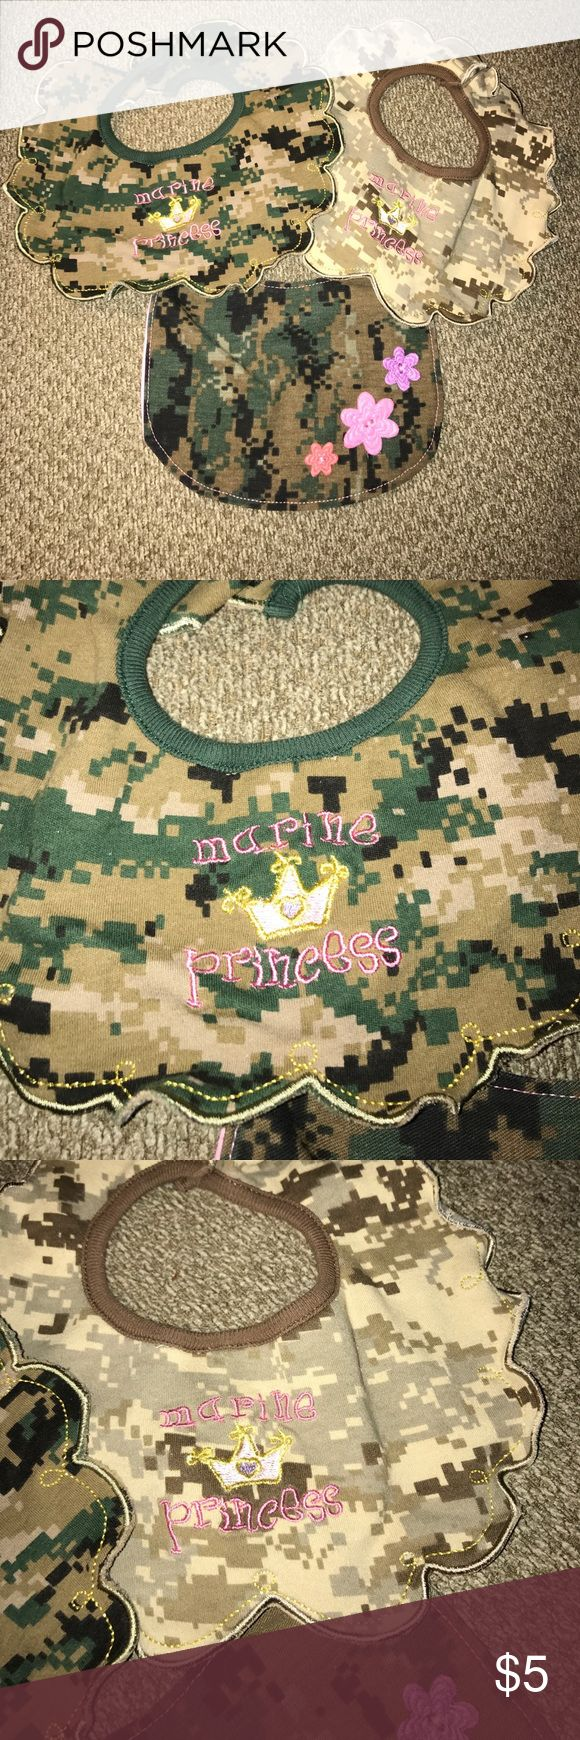 USMC baby girl bibs. Lot of three military Marine cammies baby girl bibs. You get both the desert and woodlands camouflage. USMC Accessories Bibs